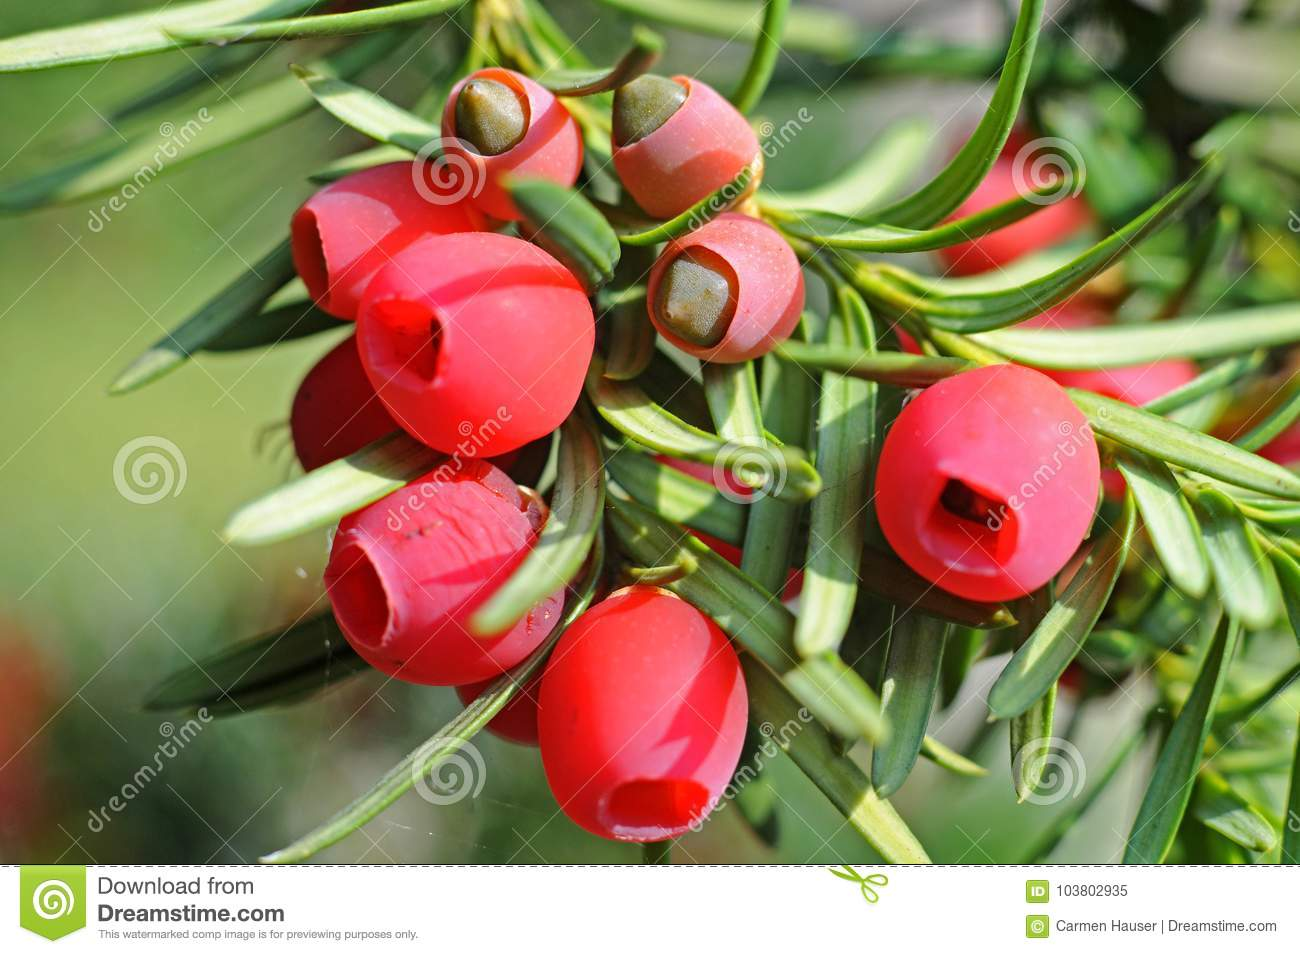 Red arils, fruits of a yew